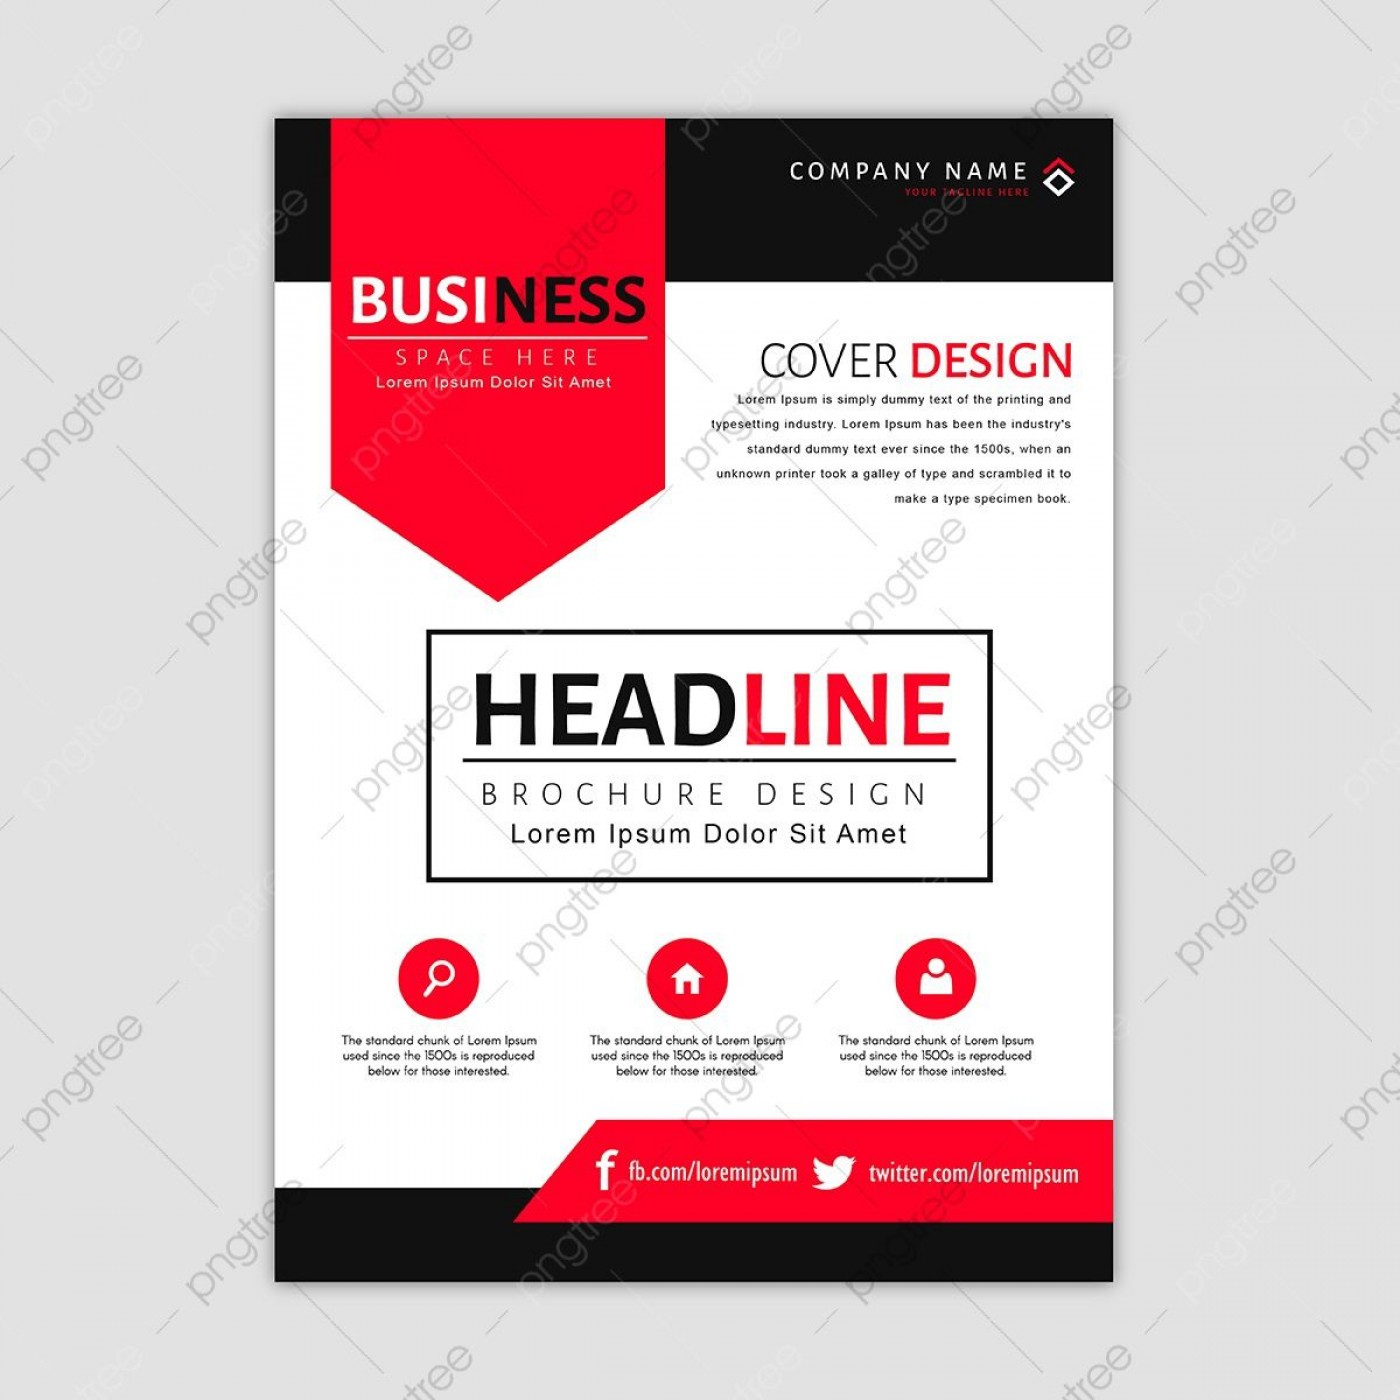 008 Frightening Busines Brochure Design Template Free Download Photo 1400